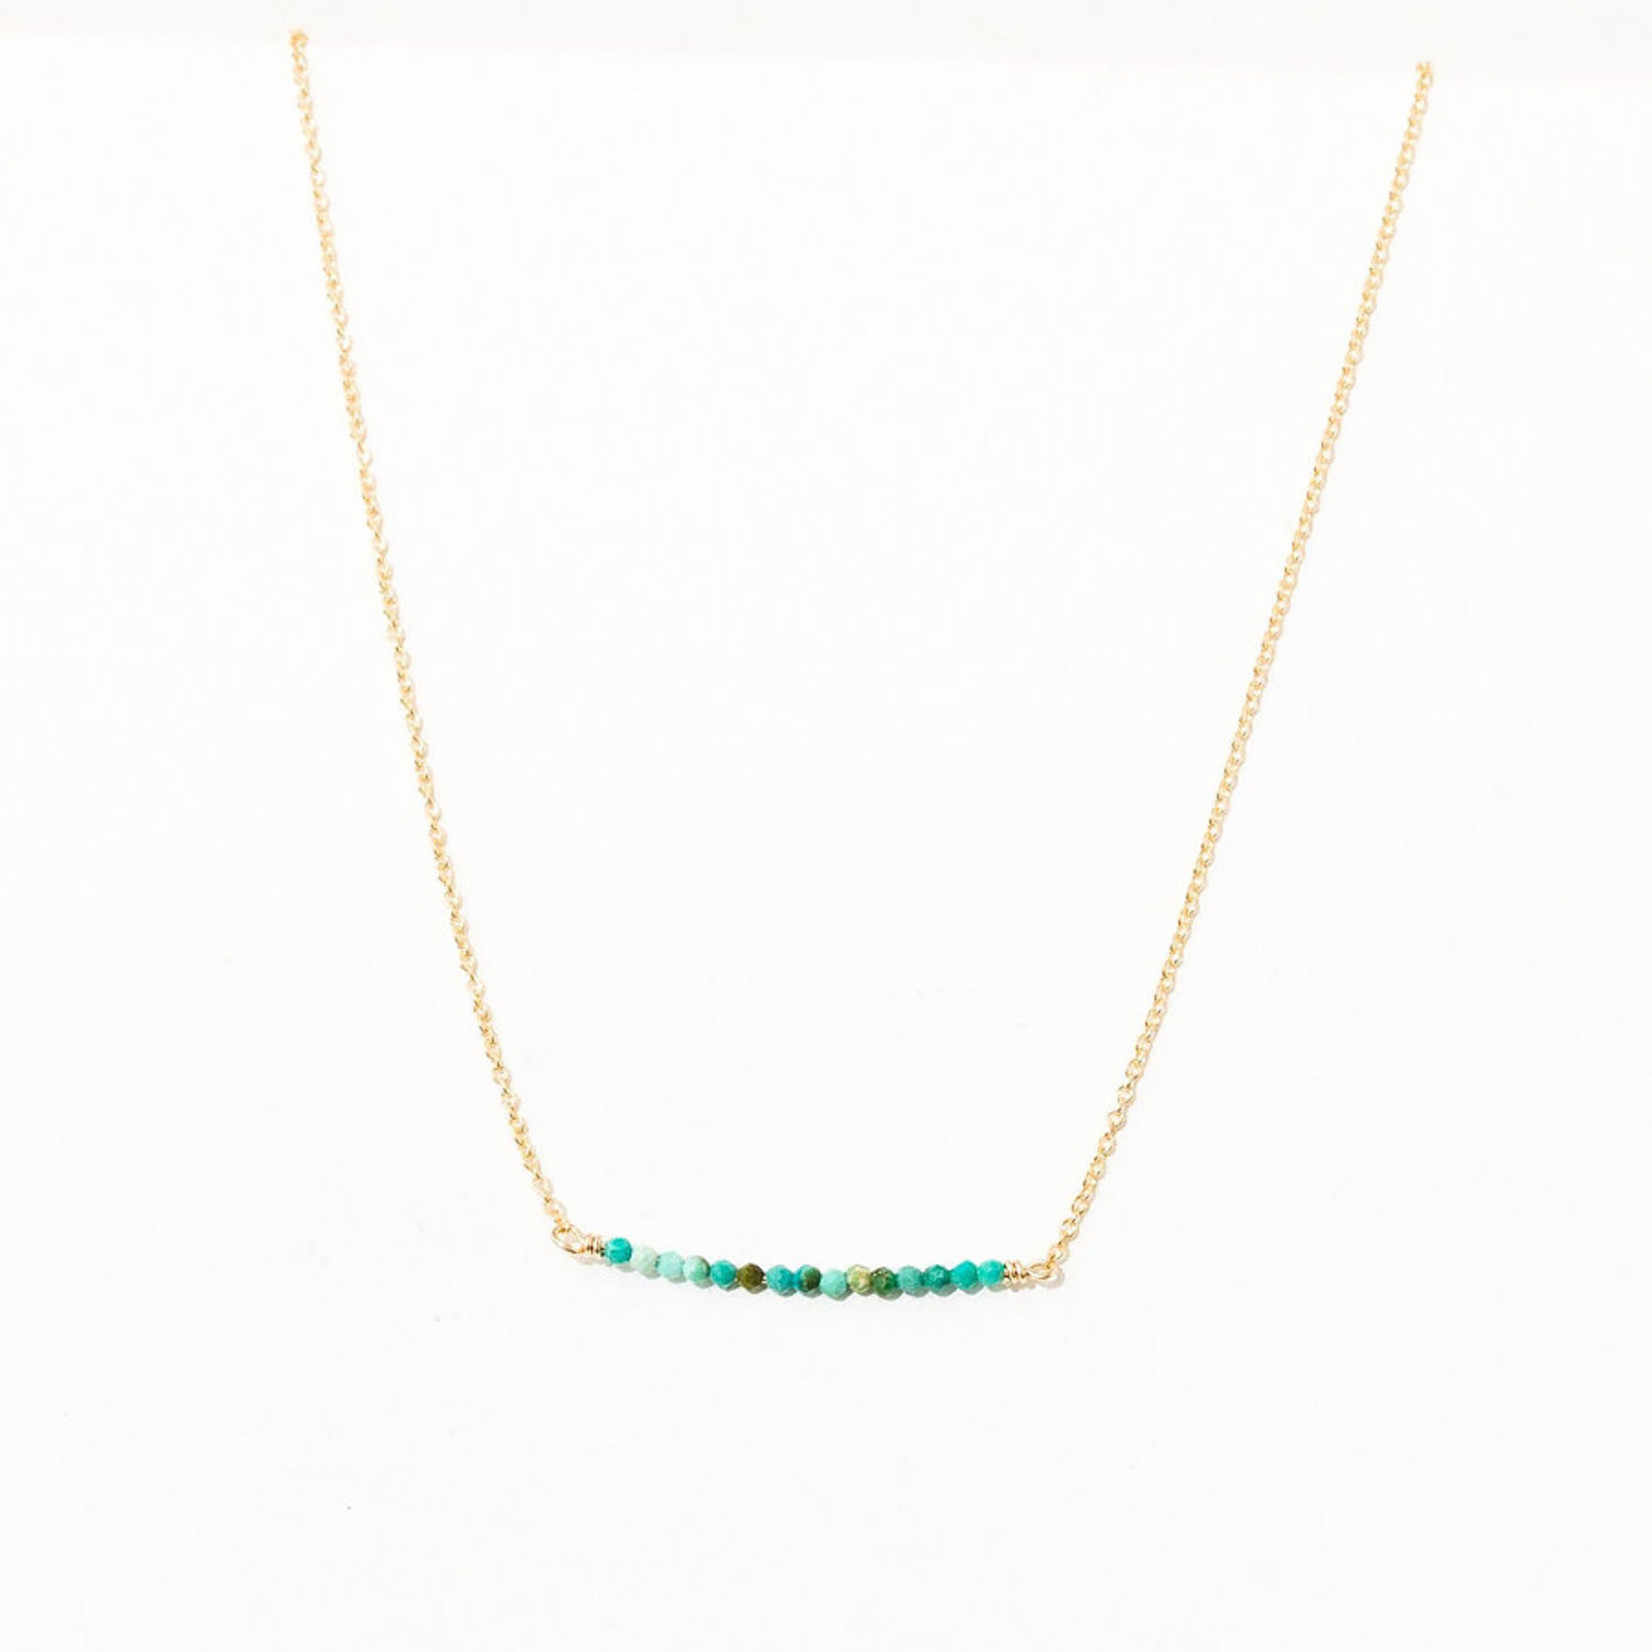 Larissa Loden Lilly Necklace